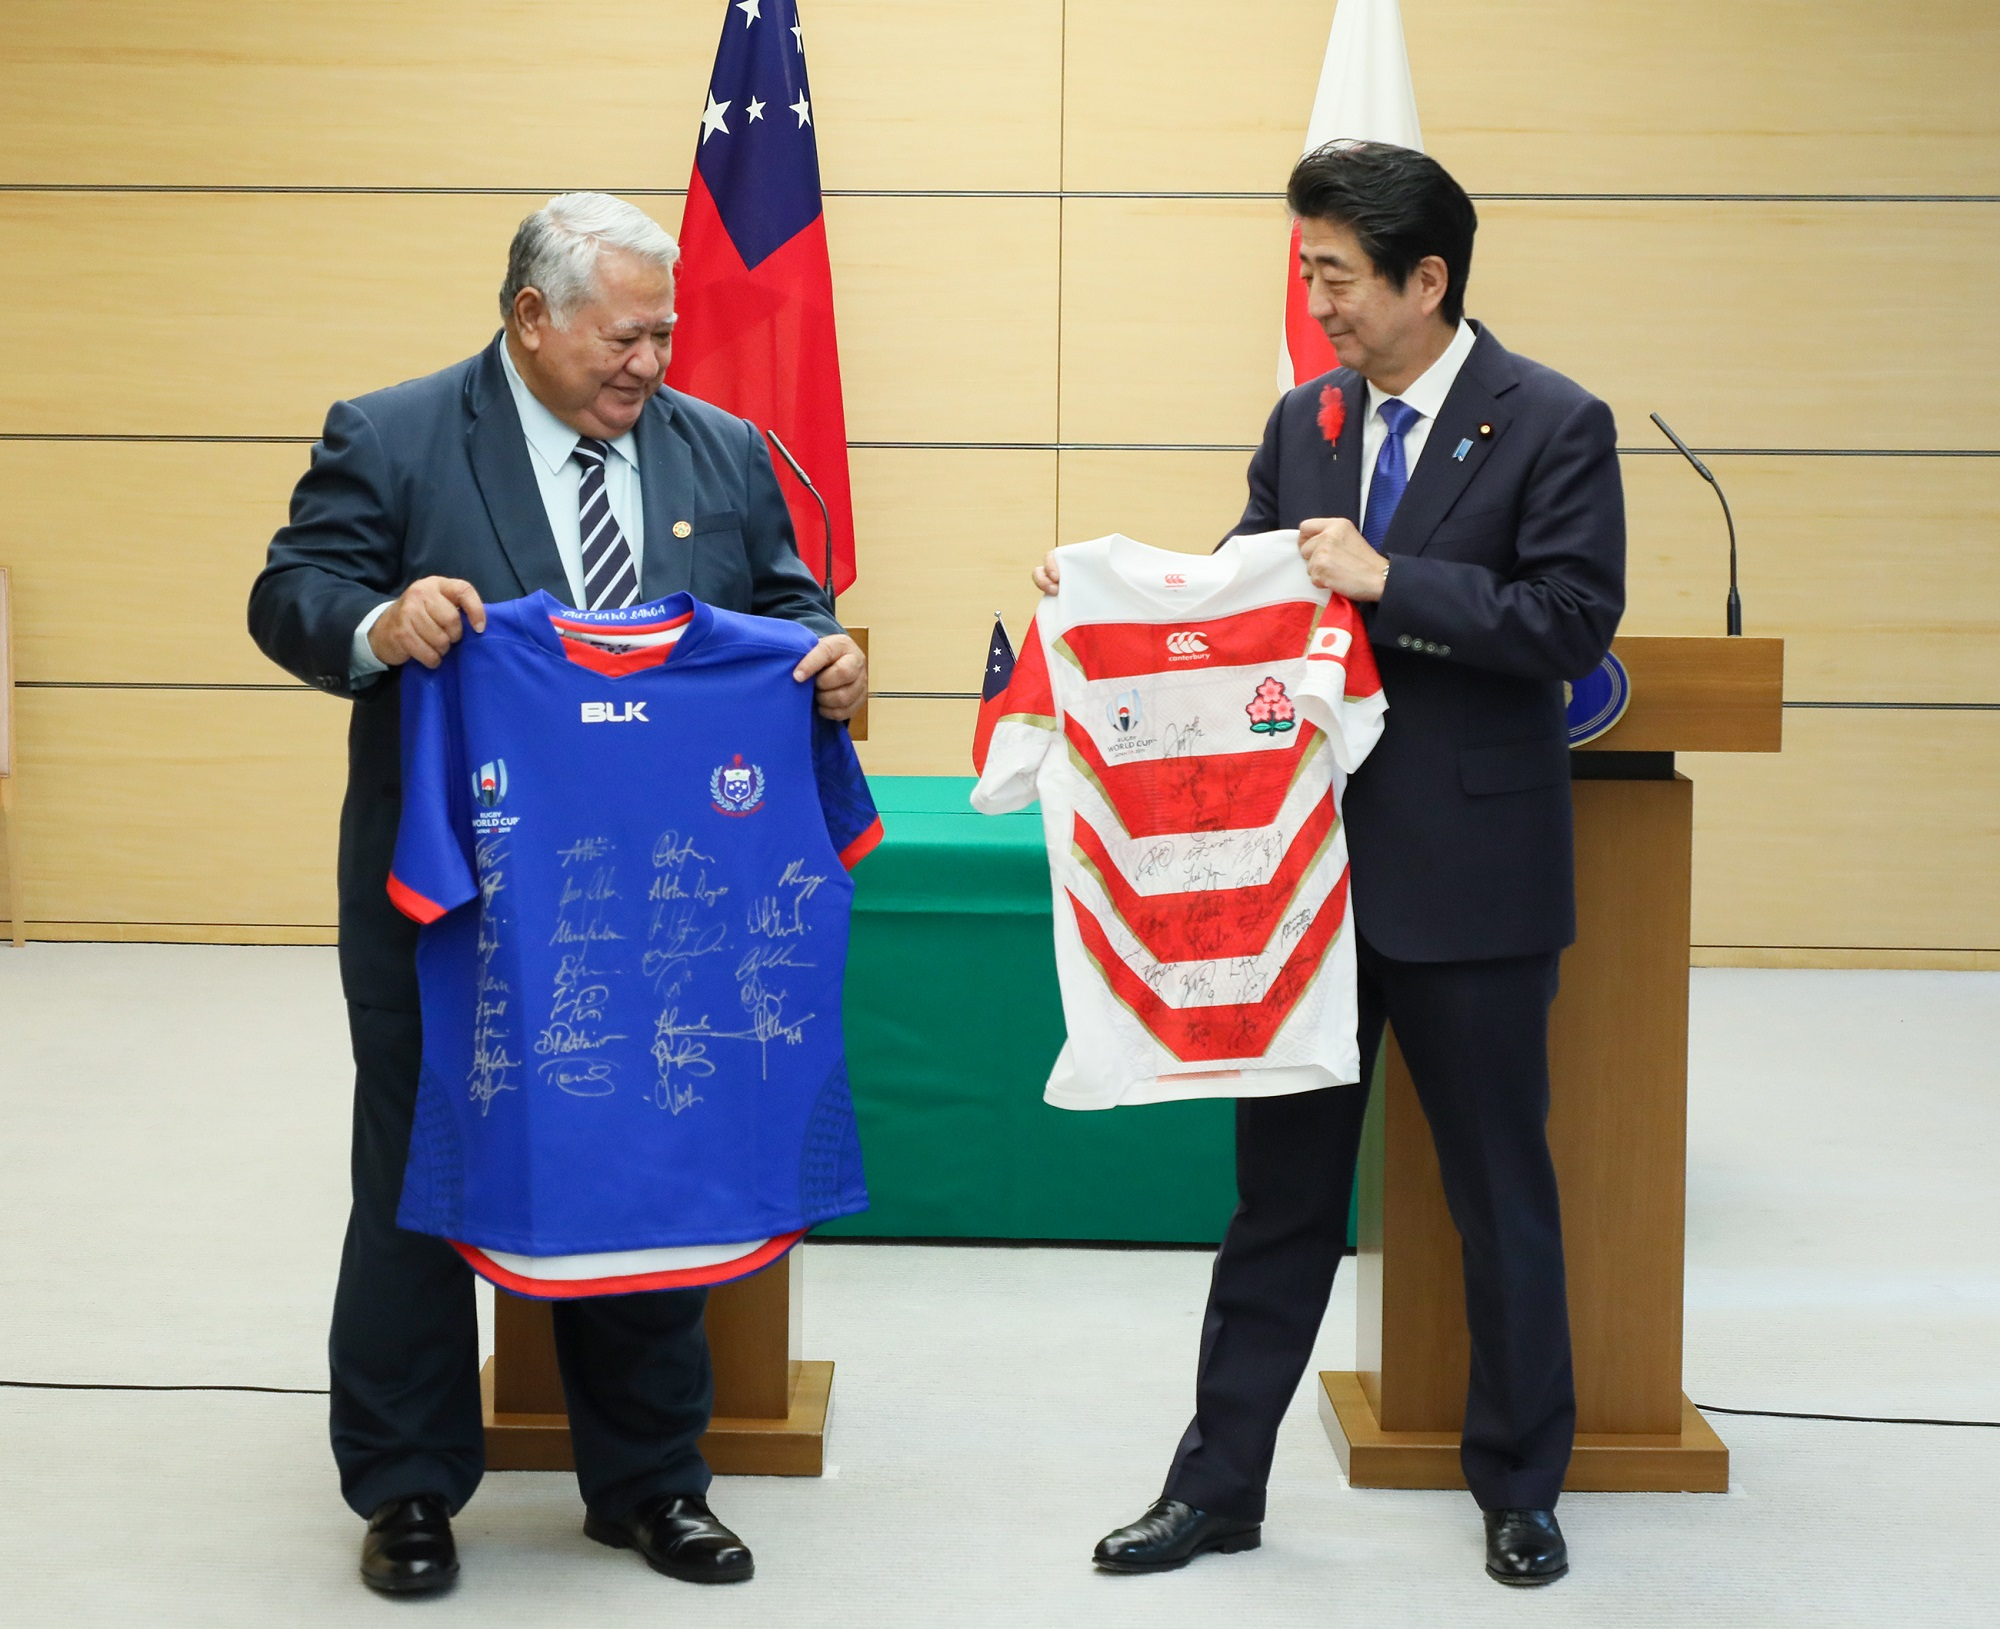 Photograph of the leaders exchanging uniforms of their countries' national rugby teams (1)